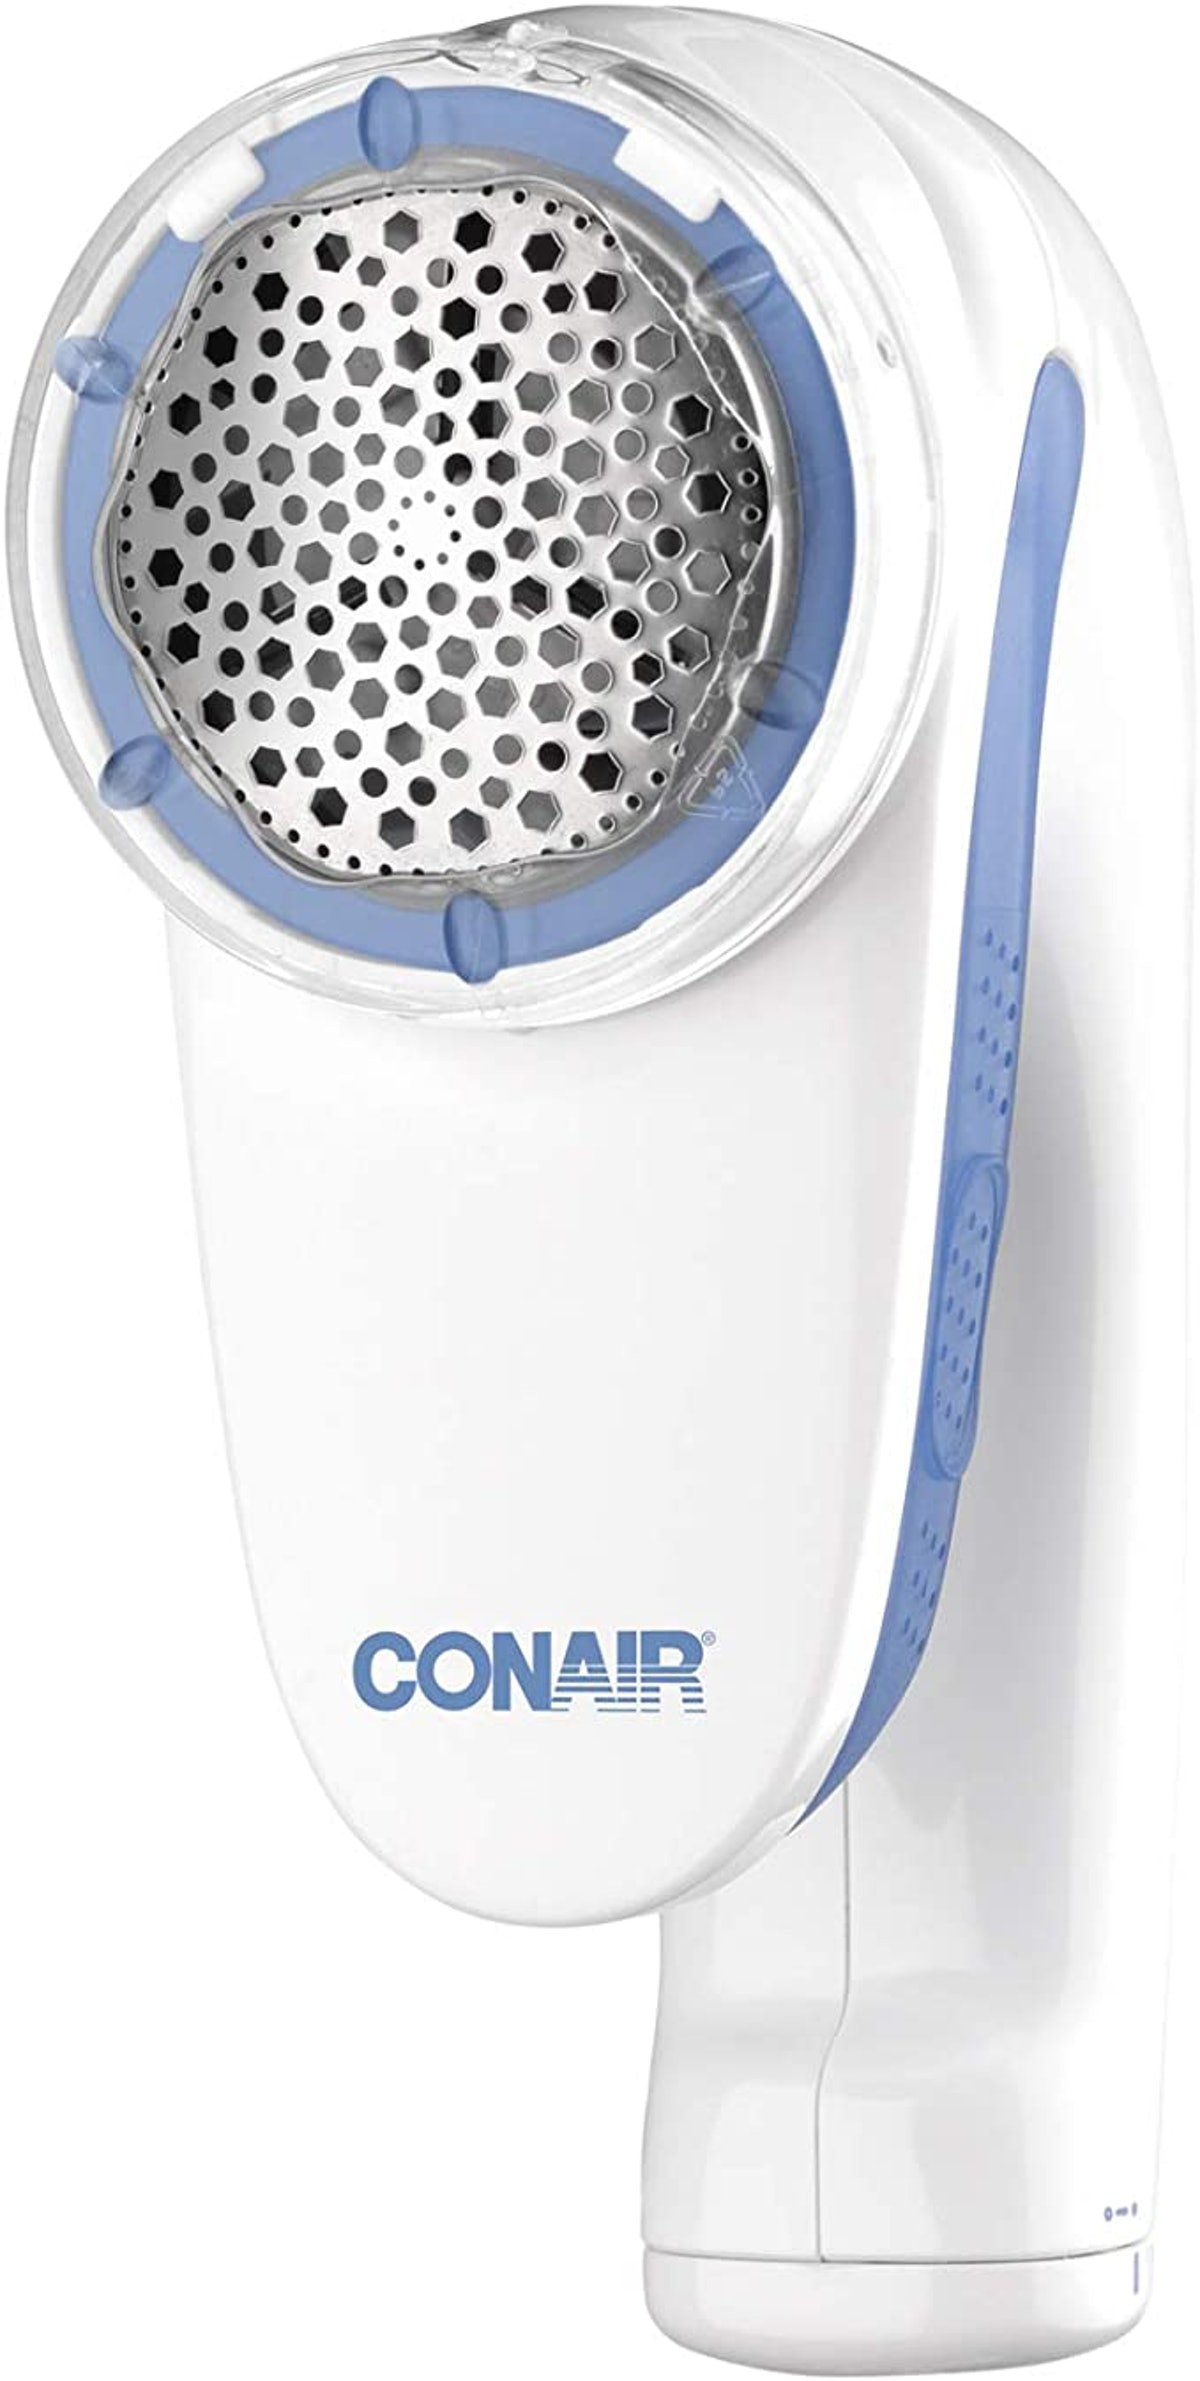 Conair Battery Operated Fabric Defuzzer/Shaver